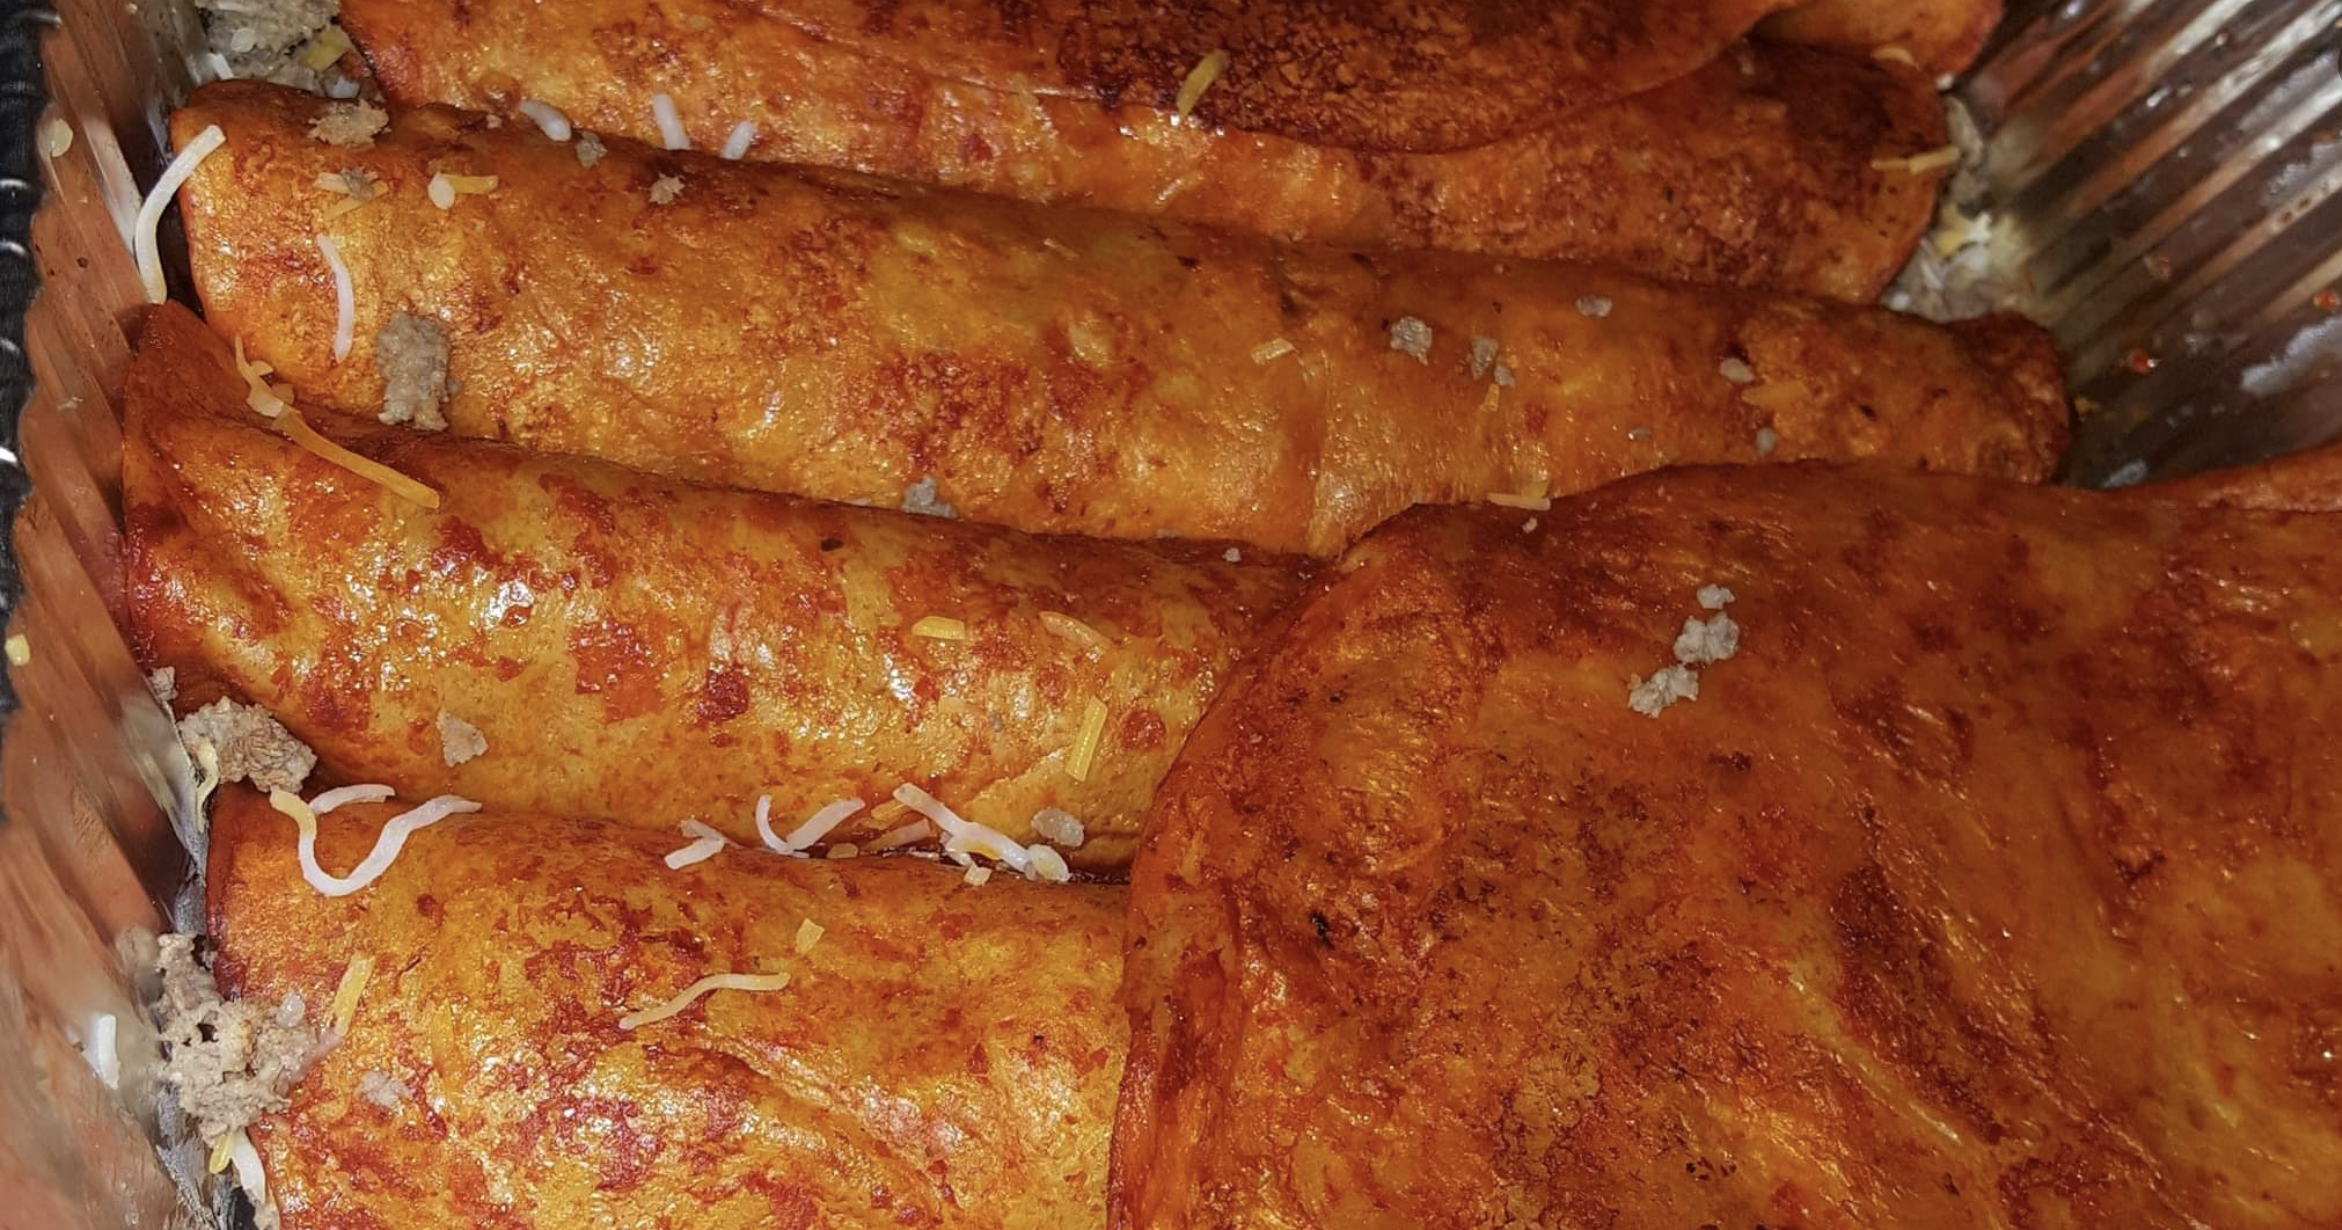 Enchiladas from Hot Tamale Catering in Des Moines